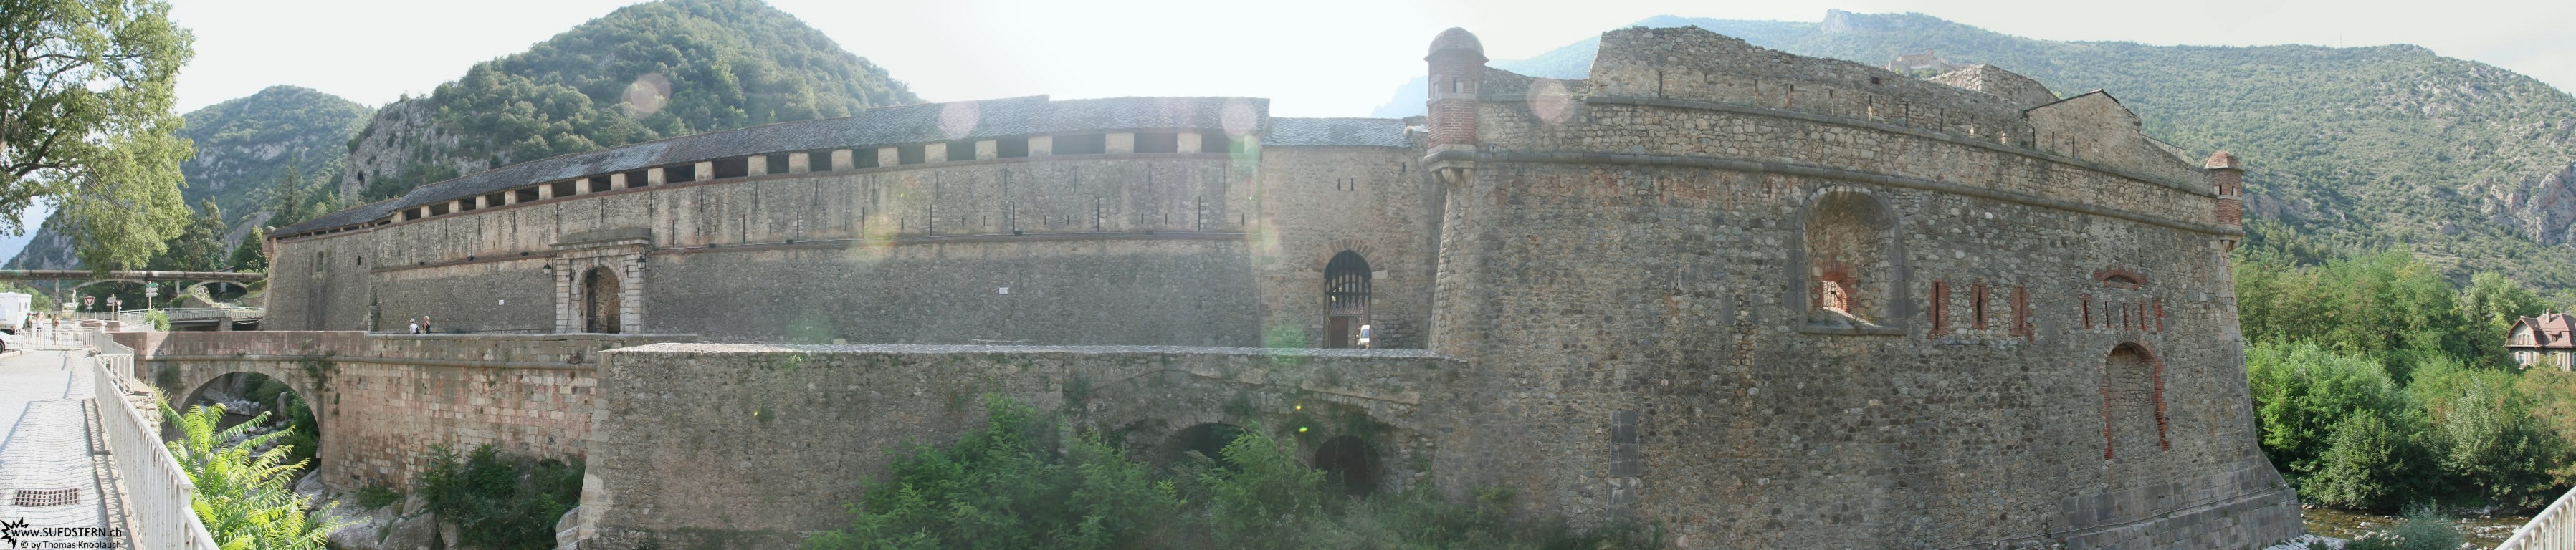 2008-09-01 - city wall of Ville Franche de Conflent, france